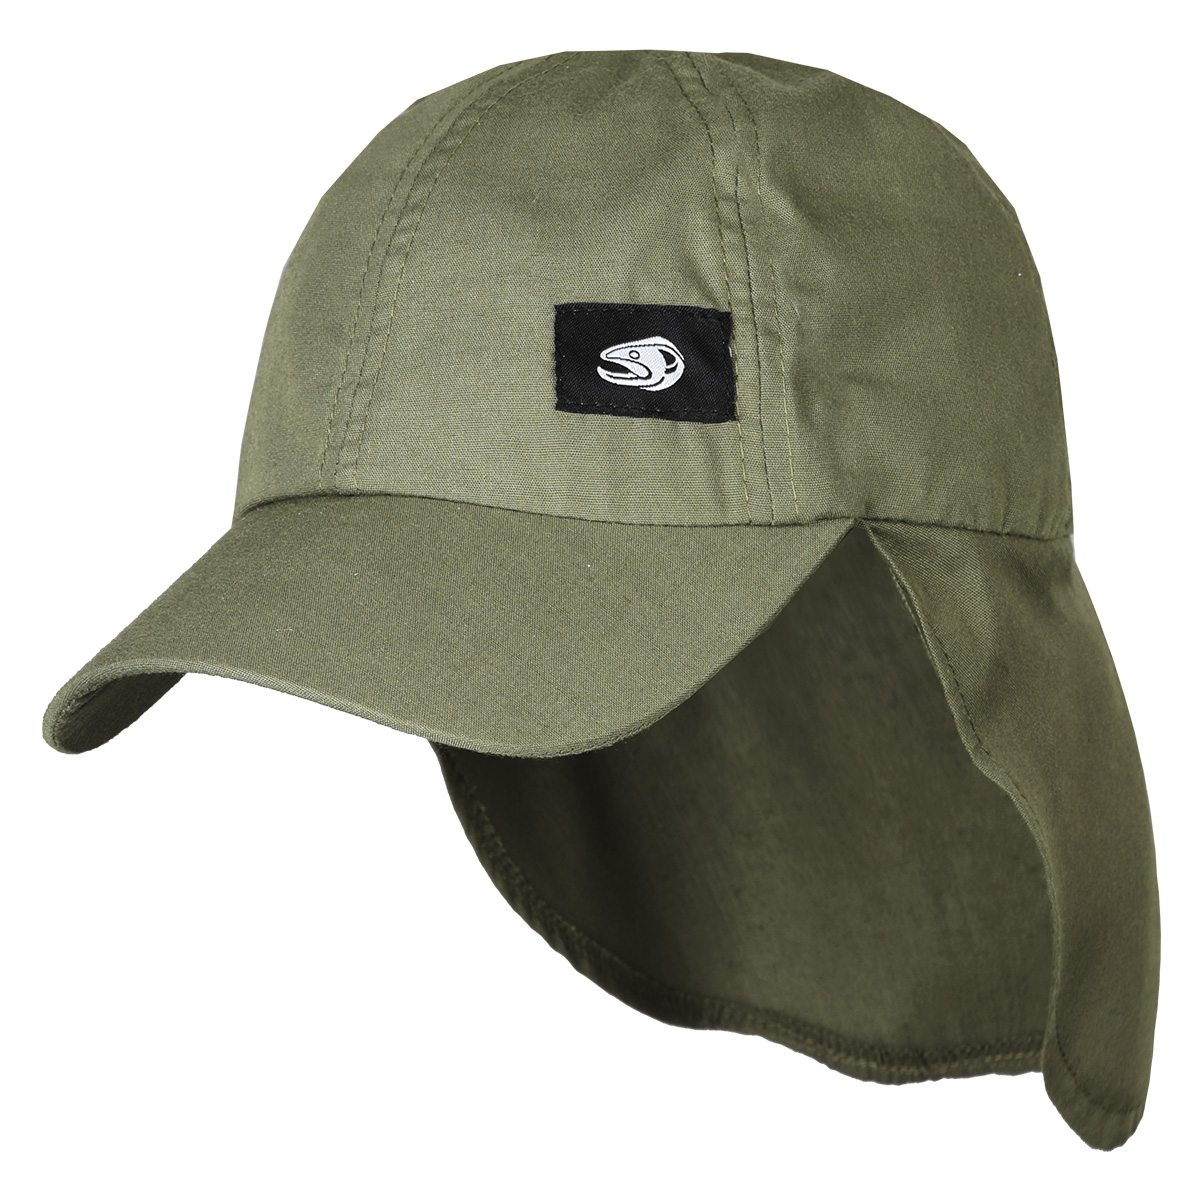 Taimen Fishing Sun Cap